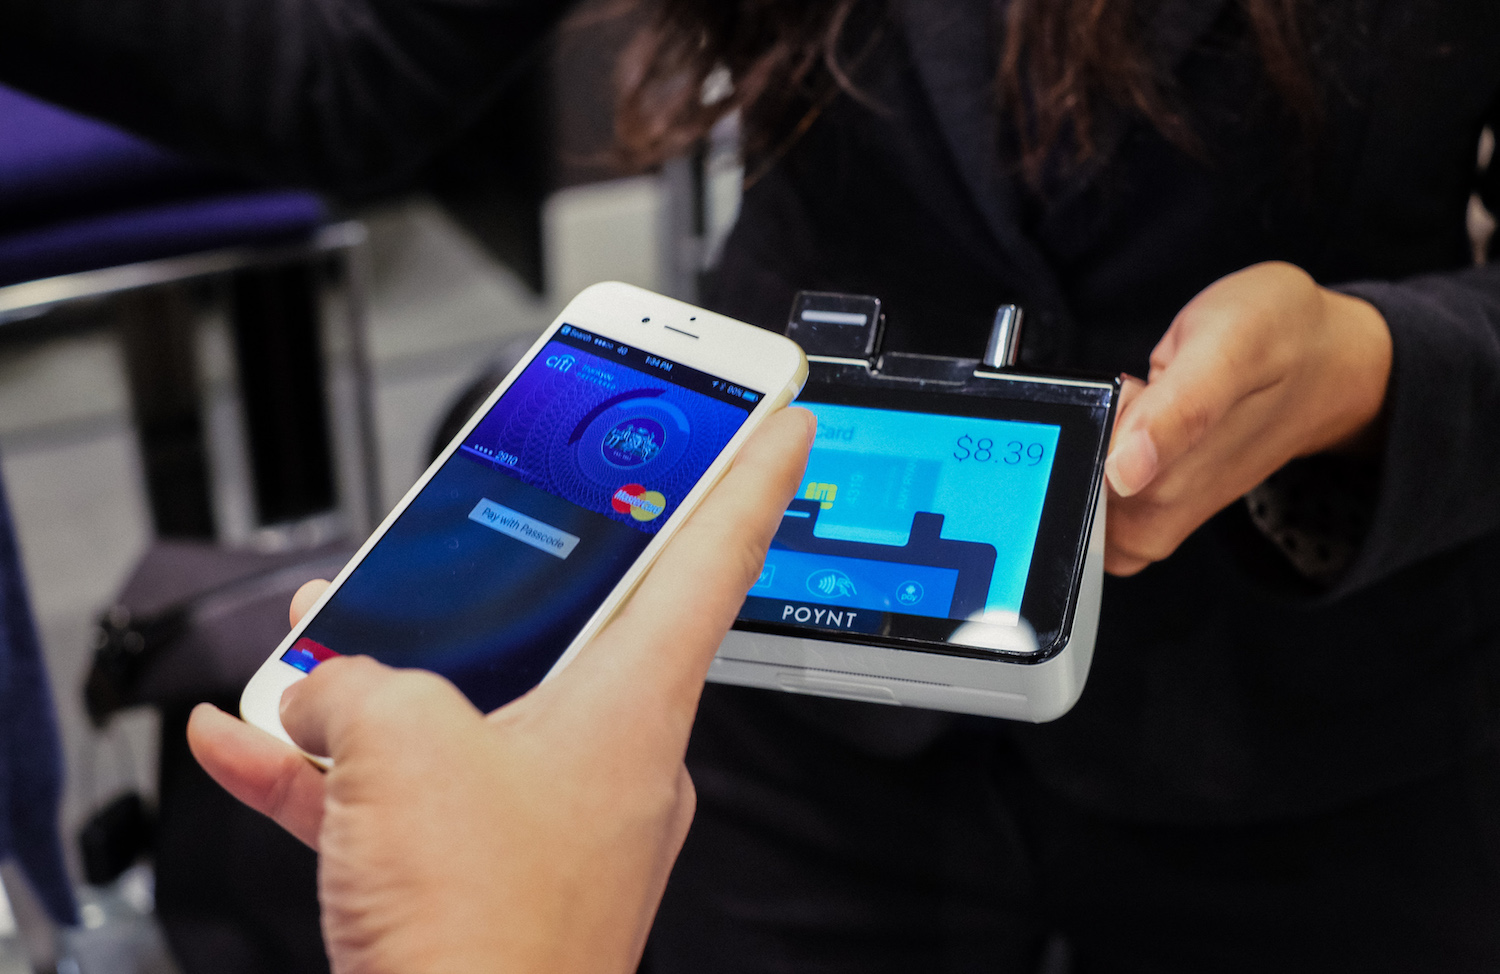 Image of a poynt terminal and a person with a payment on phone